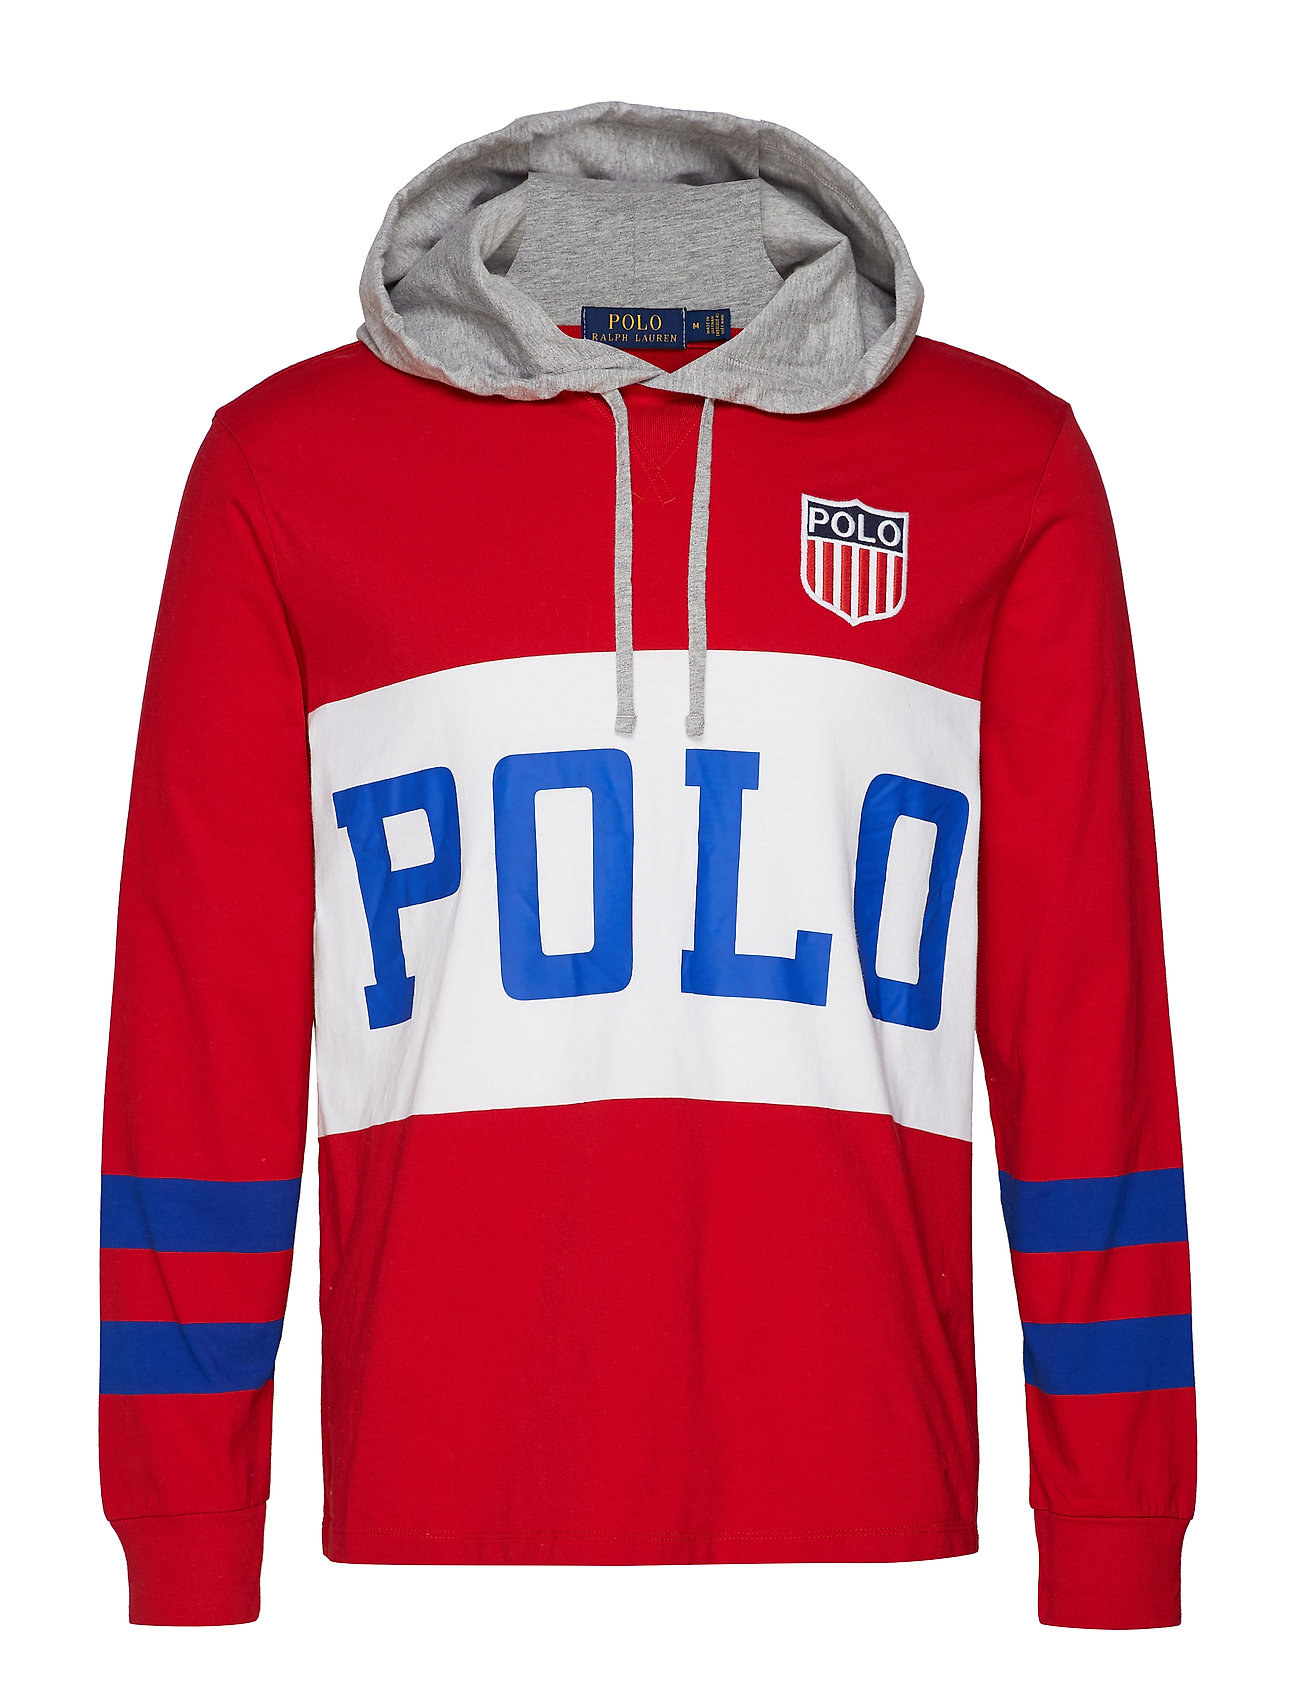 Polo Ralph Lauren Cotton Jersey Hooded Tee - RL 2000 RED MULTI